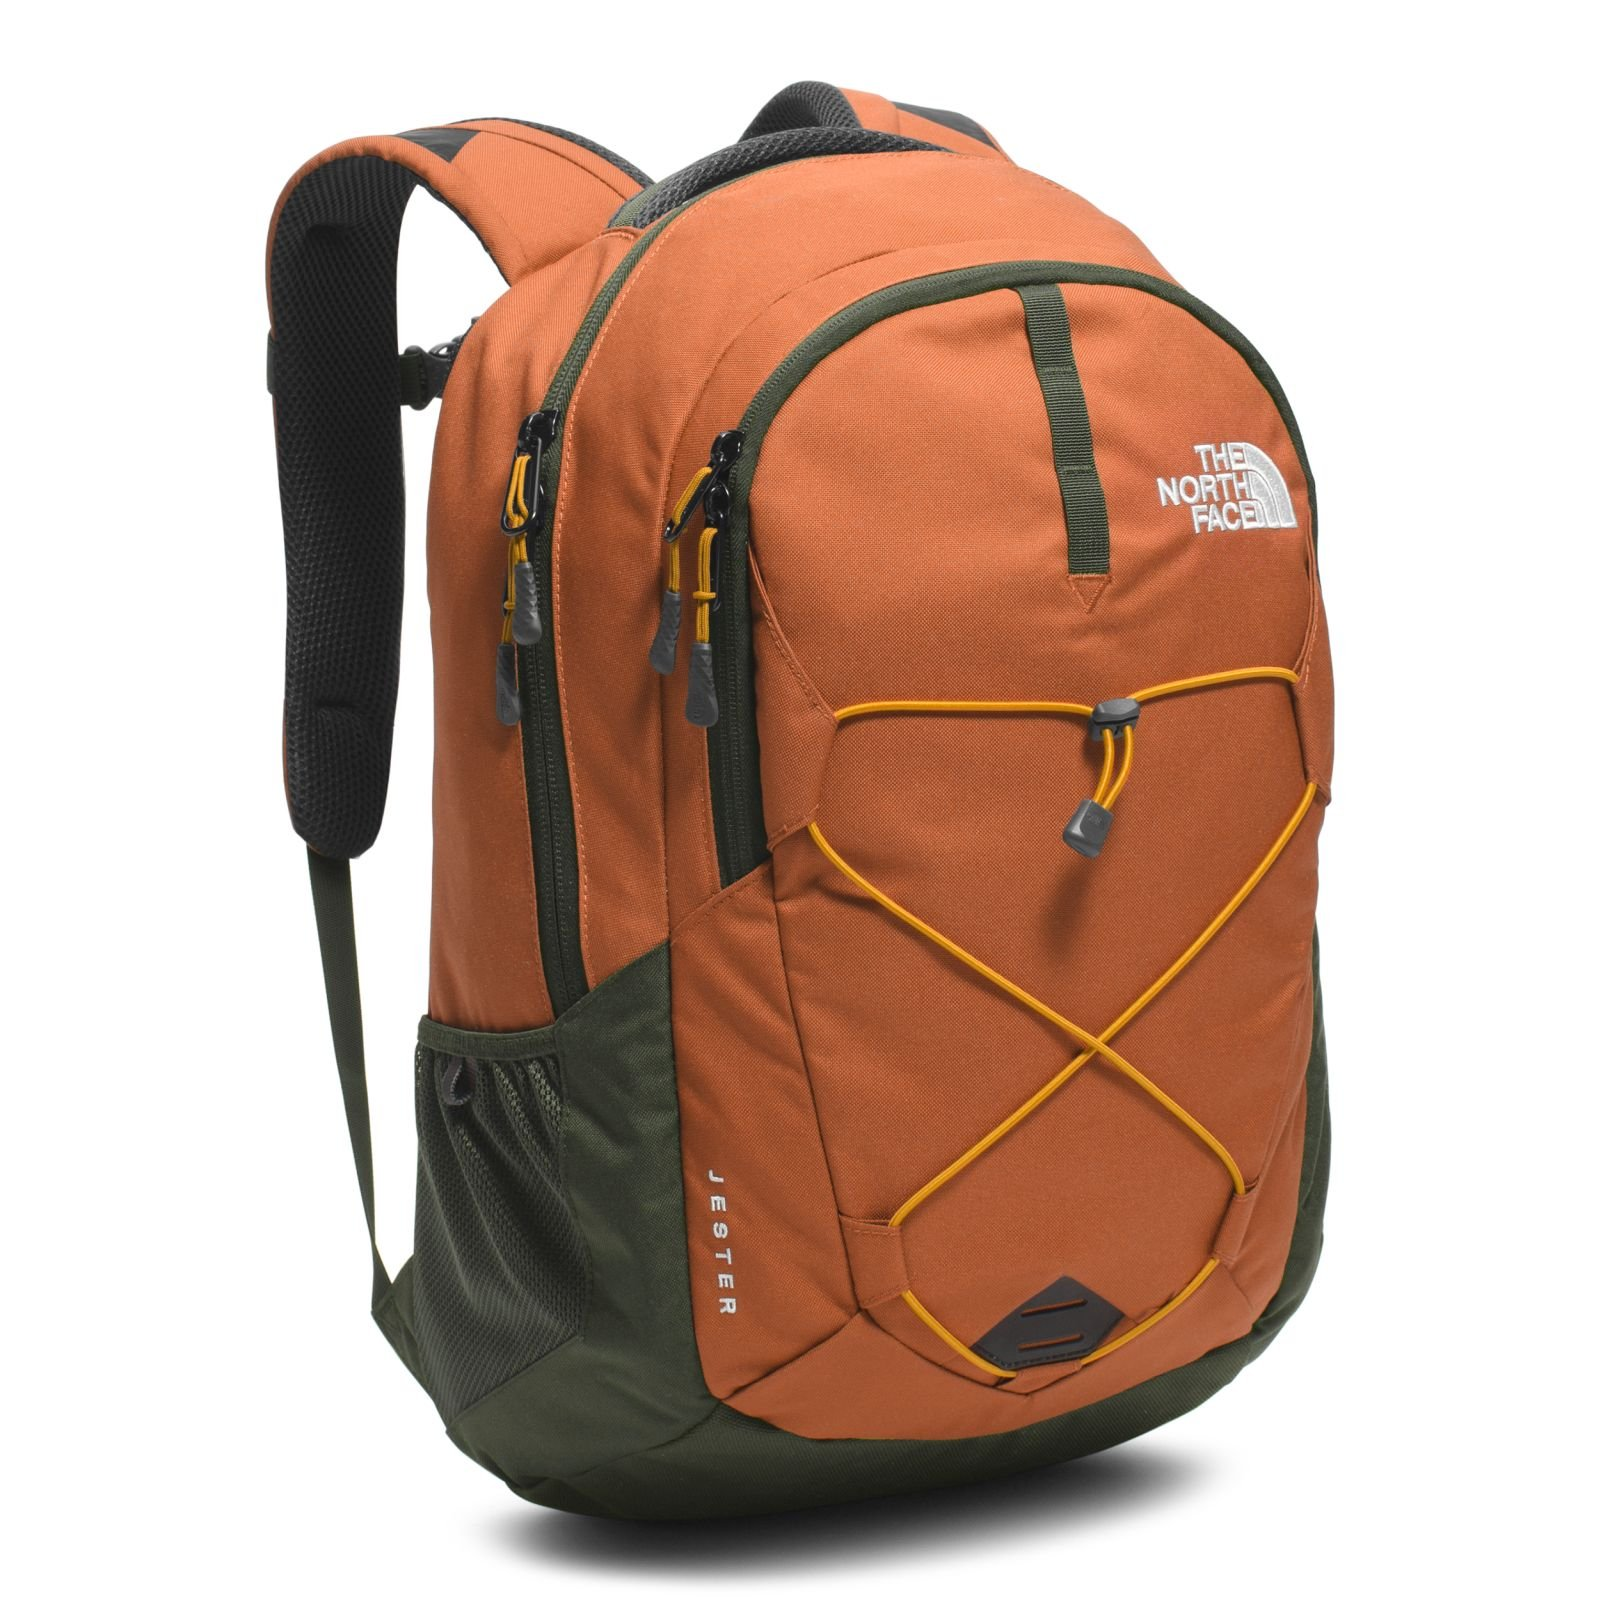 The North Face Unisex Jester Gingerbread Brown/Citrine Yellow Backpack by The North Face